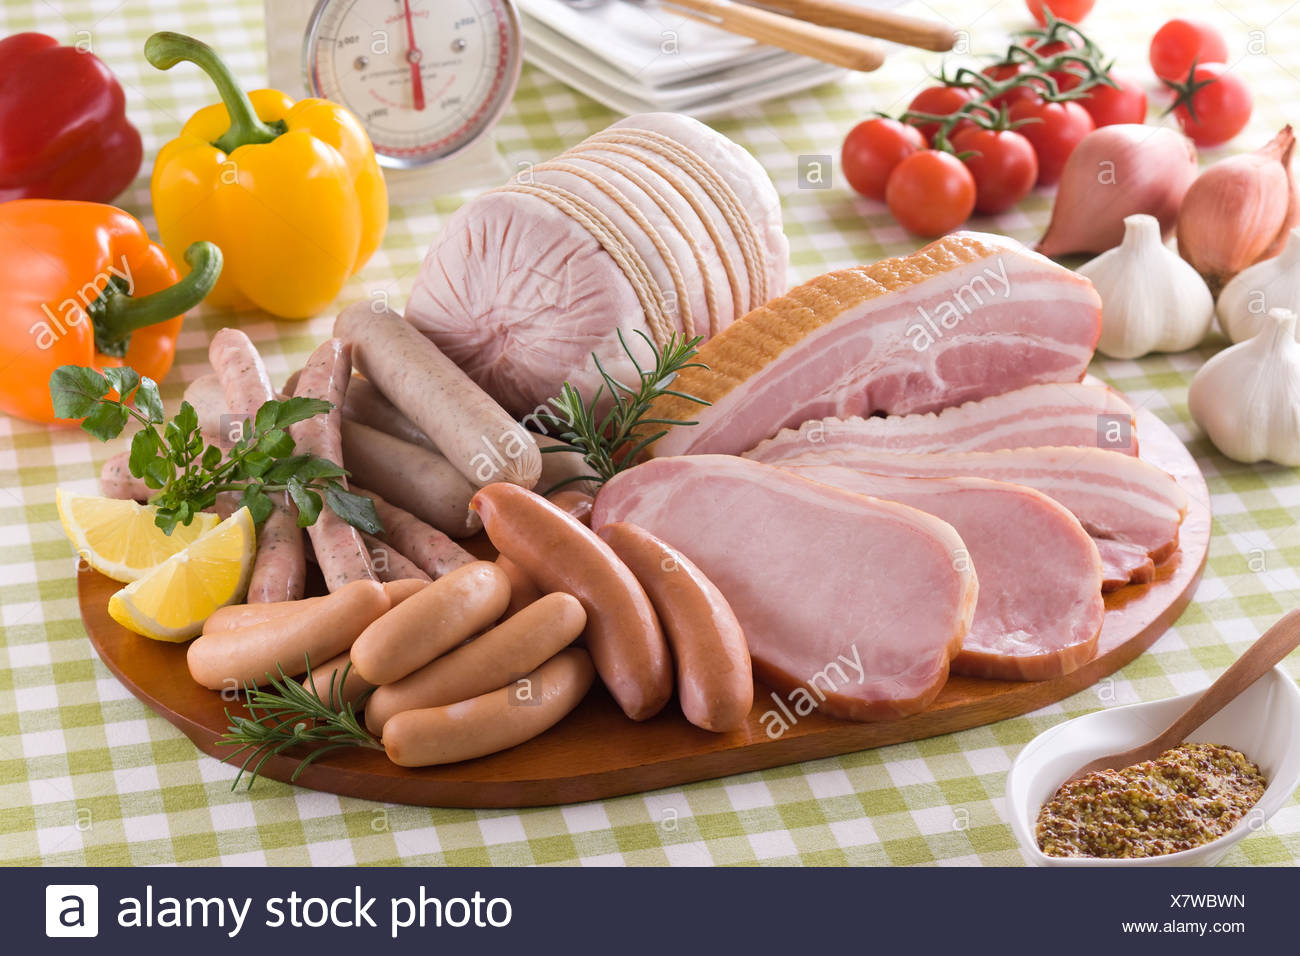 processed meat stock photos processed meat stock images alamy